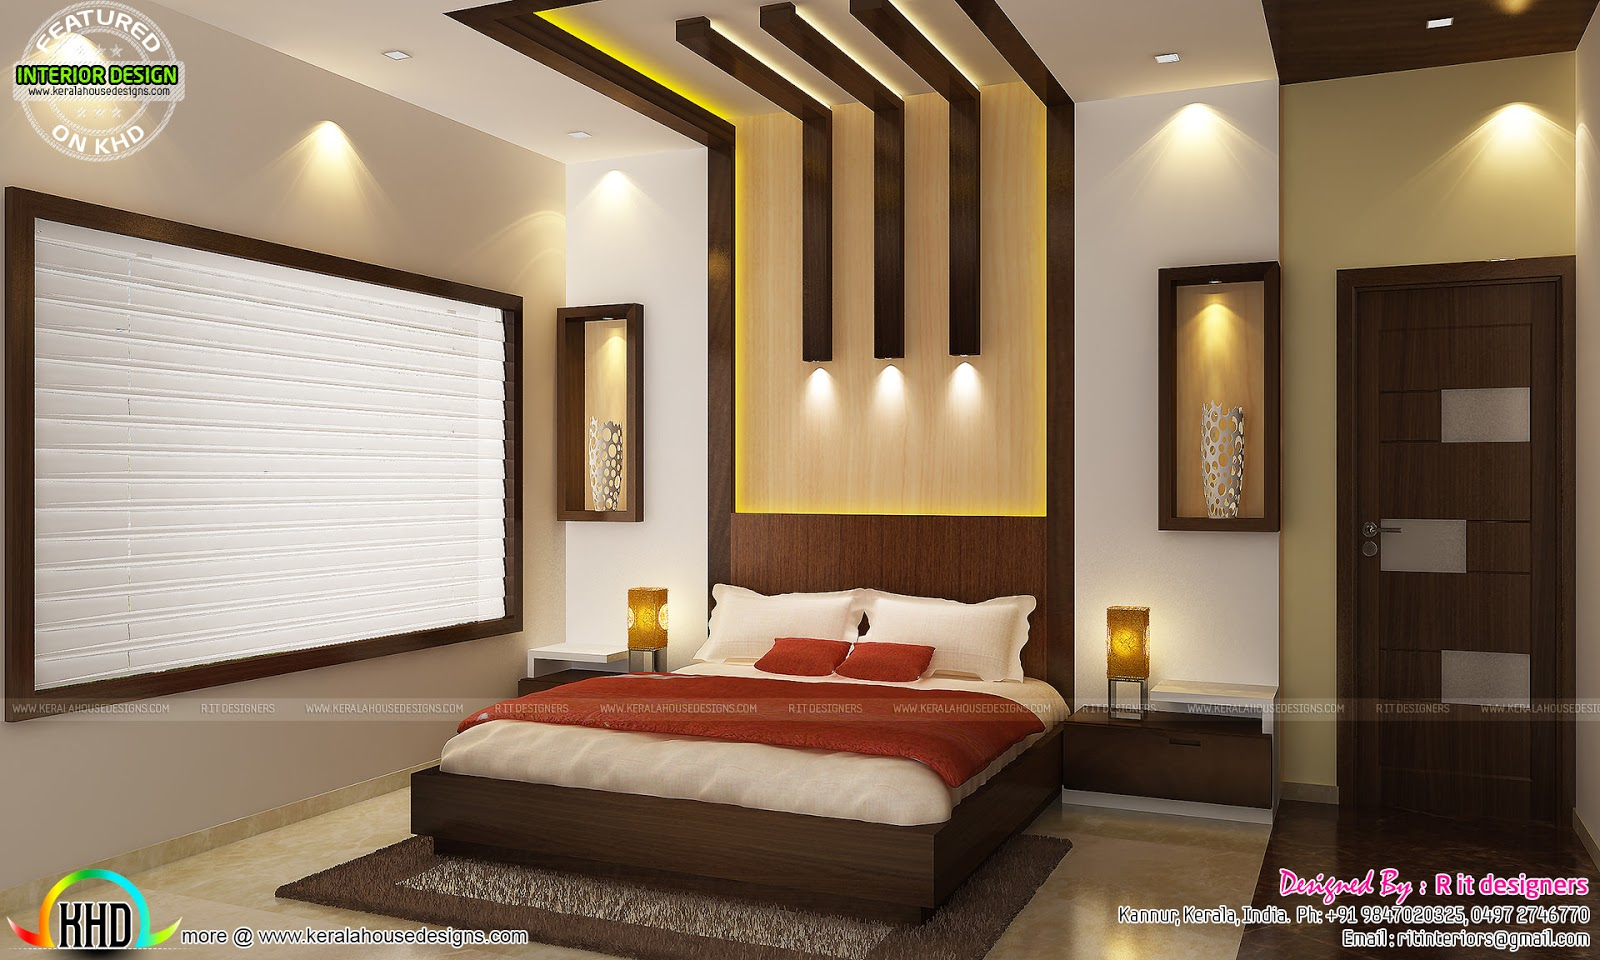 Kitchen living bedroom dining interior decor kerala for House bedroom ideas